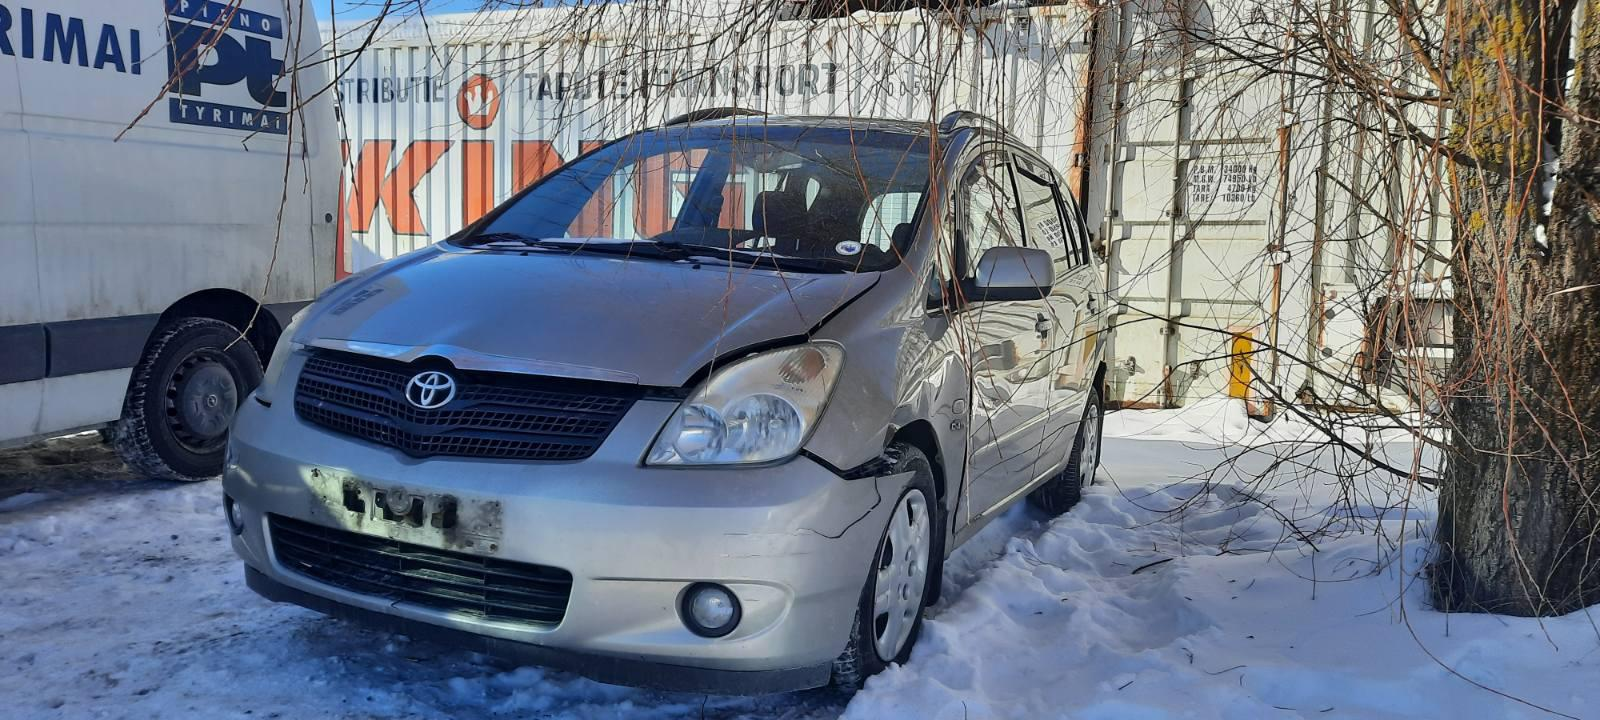 Used Car Parts Foto 2 Toyota COROLLA VERSO 2003 2.0 Mechanical Minivan 4/5 d. Grey 2021-2-18 A6058